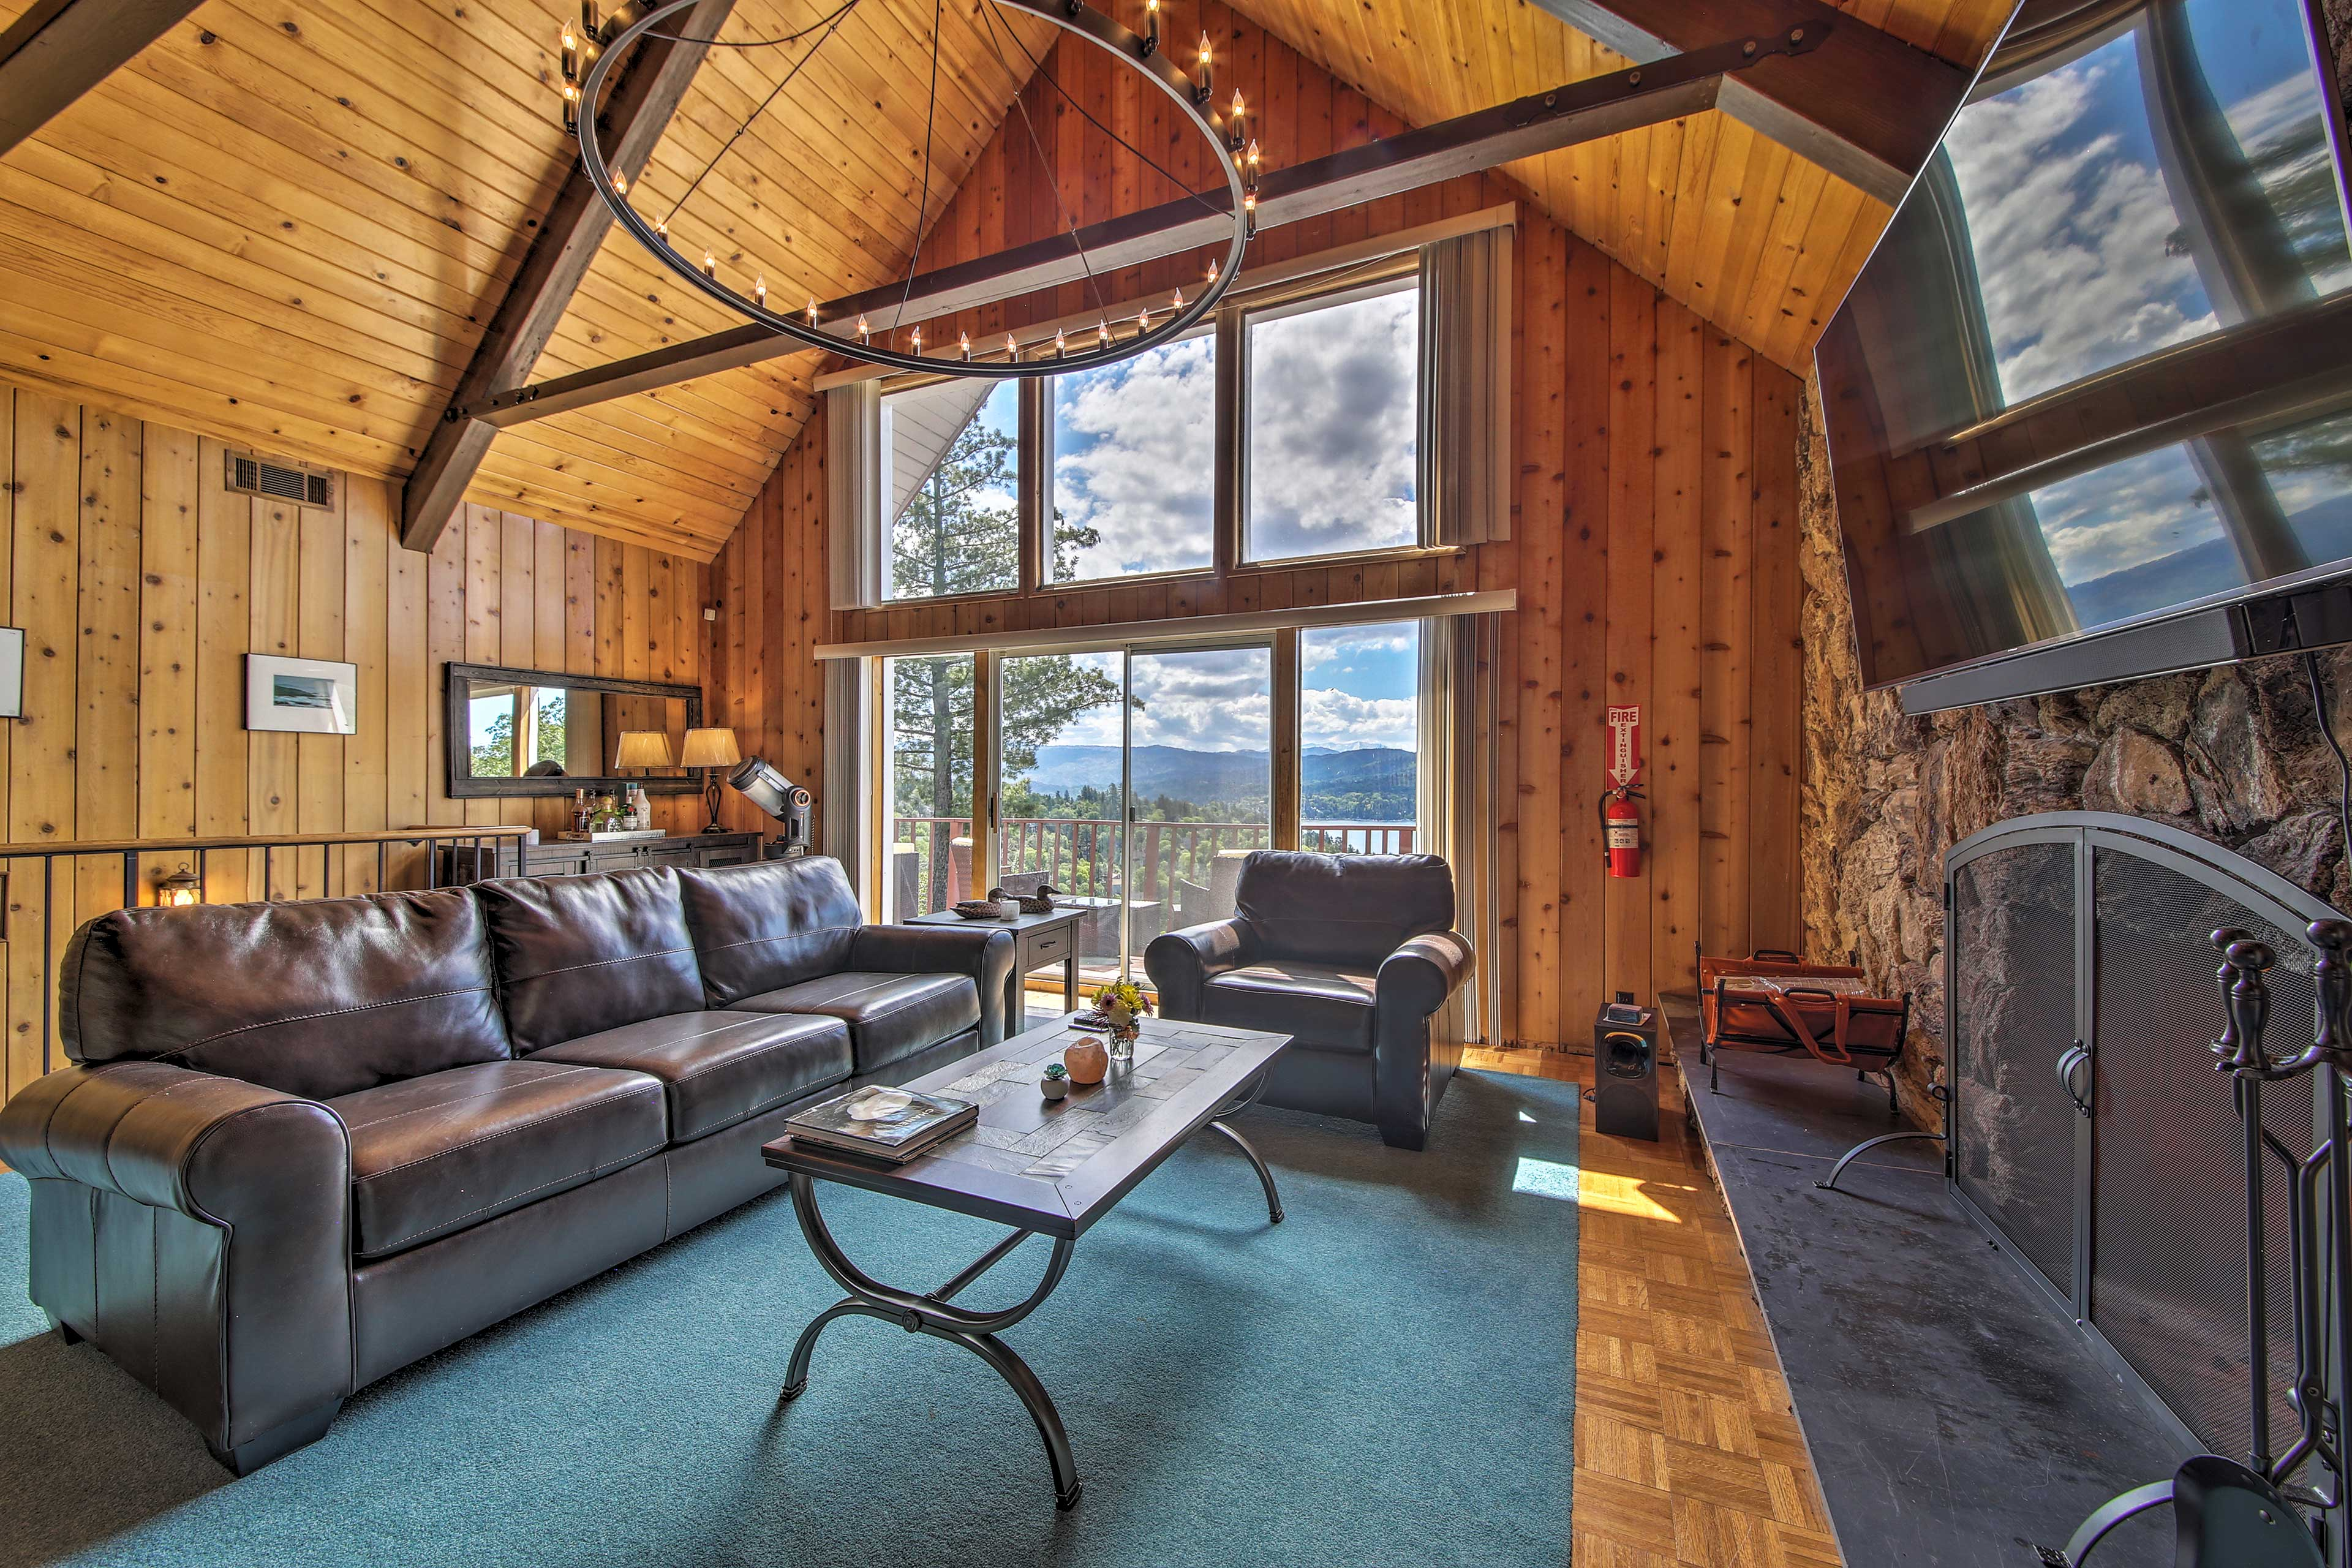 Embrace the natural light and views of the landscape from many angles!